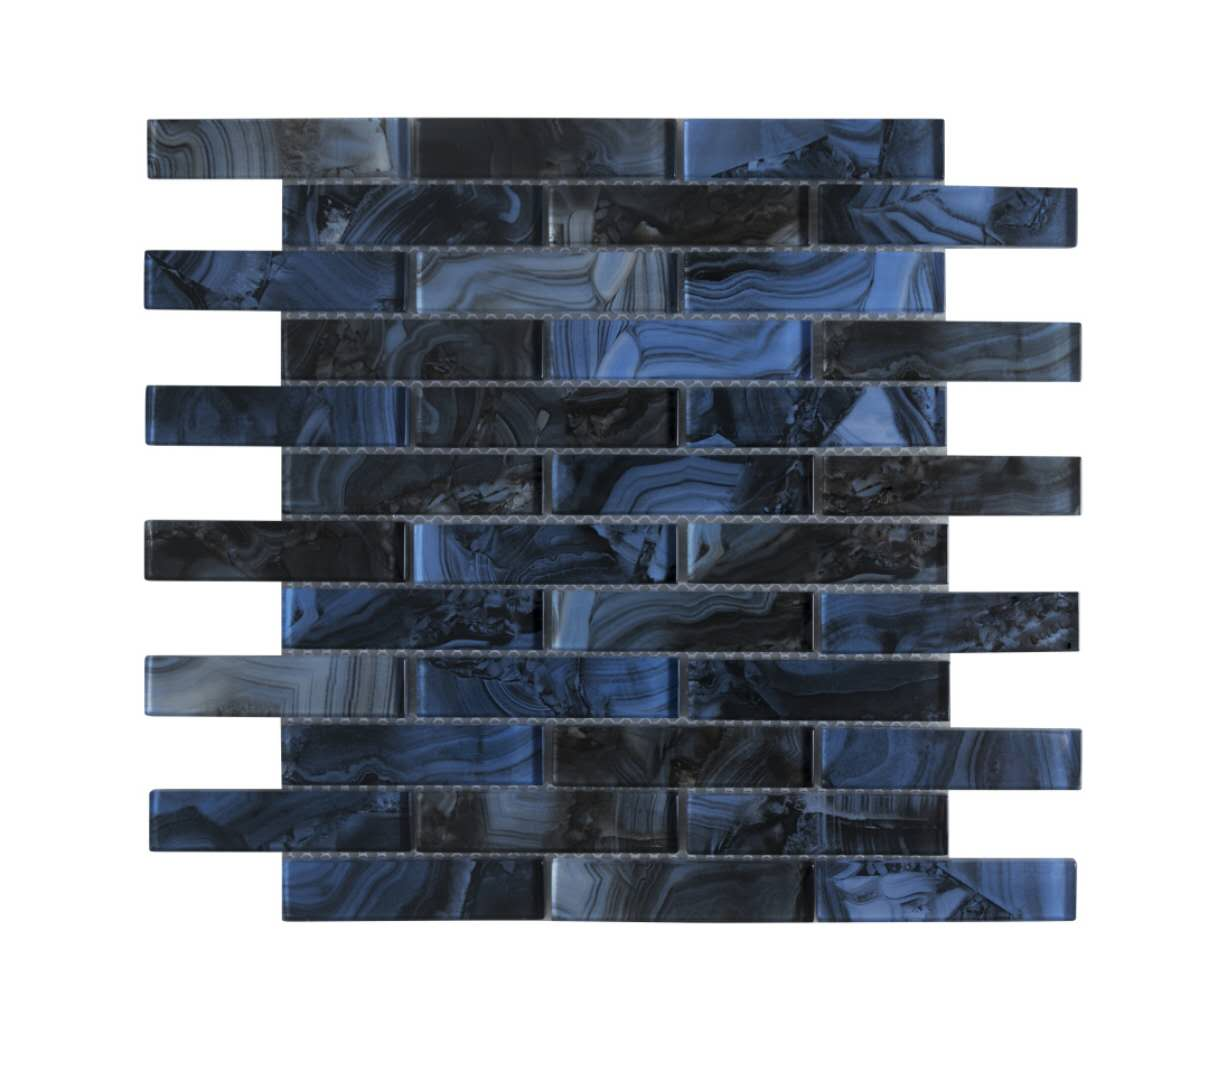 "Impressions 1"" X 4"" Glass Mosaic Tile, Backsplash for Kitchen and Bathroom - 5 Square Feet Per Carton - Blue and Gray"